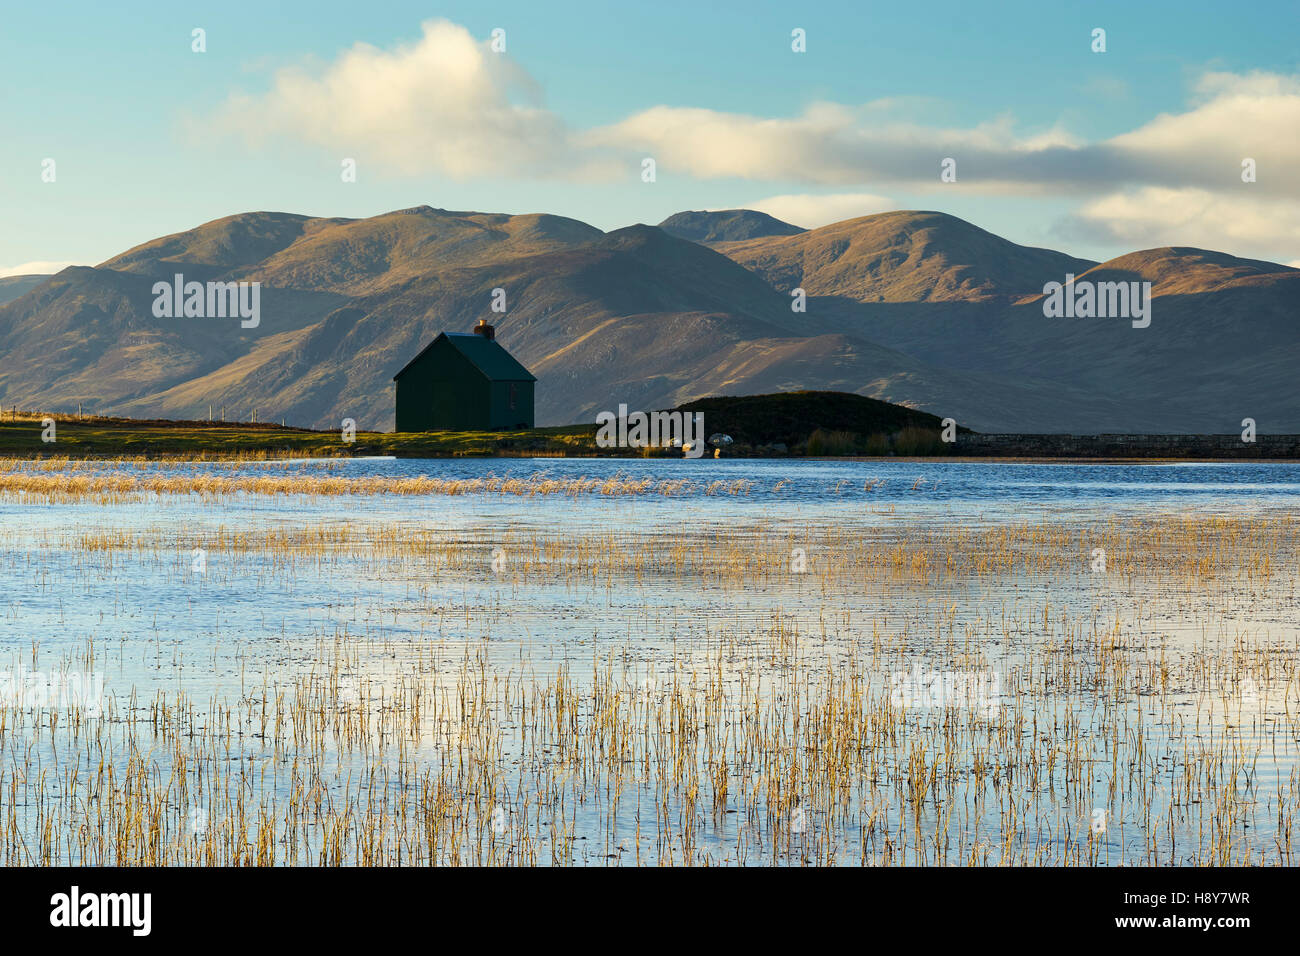 Hut and lochan on Urlar Moor, above Kenmore, Perthshire, Scotland.  Carn Mairg above Glen Lyon in the background. - Stock Image